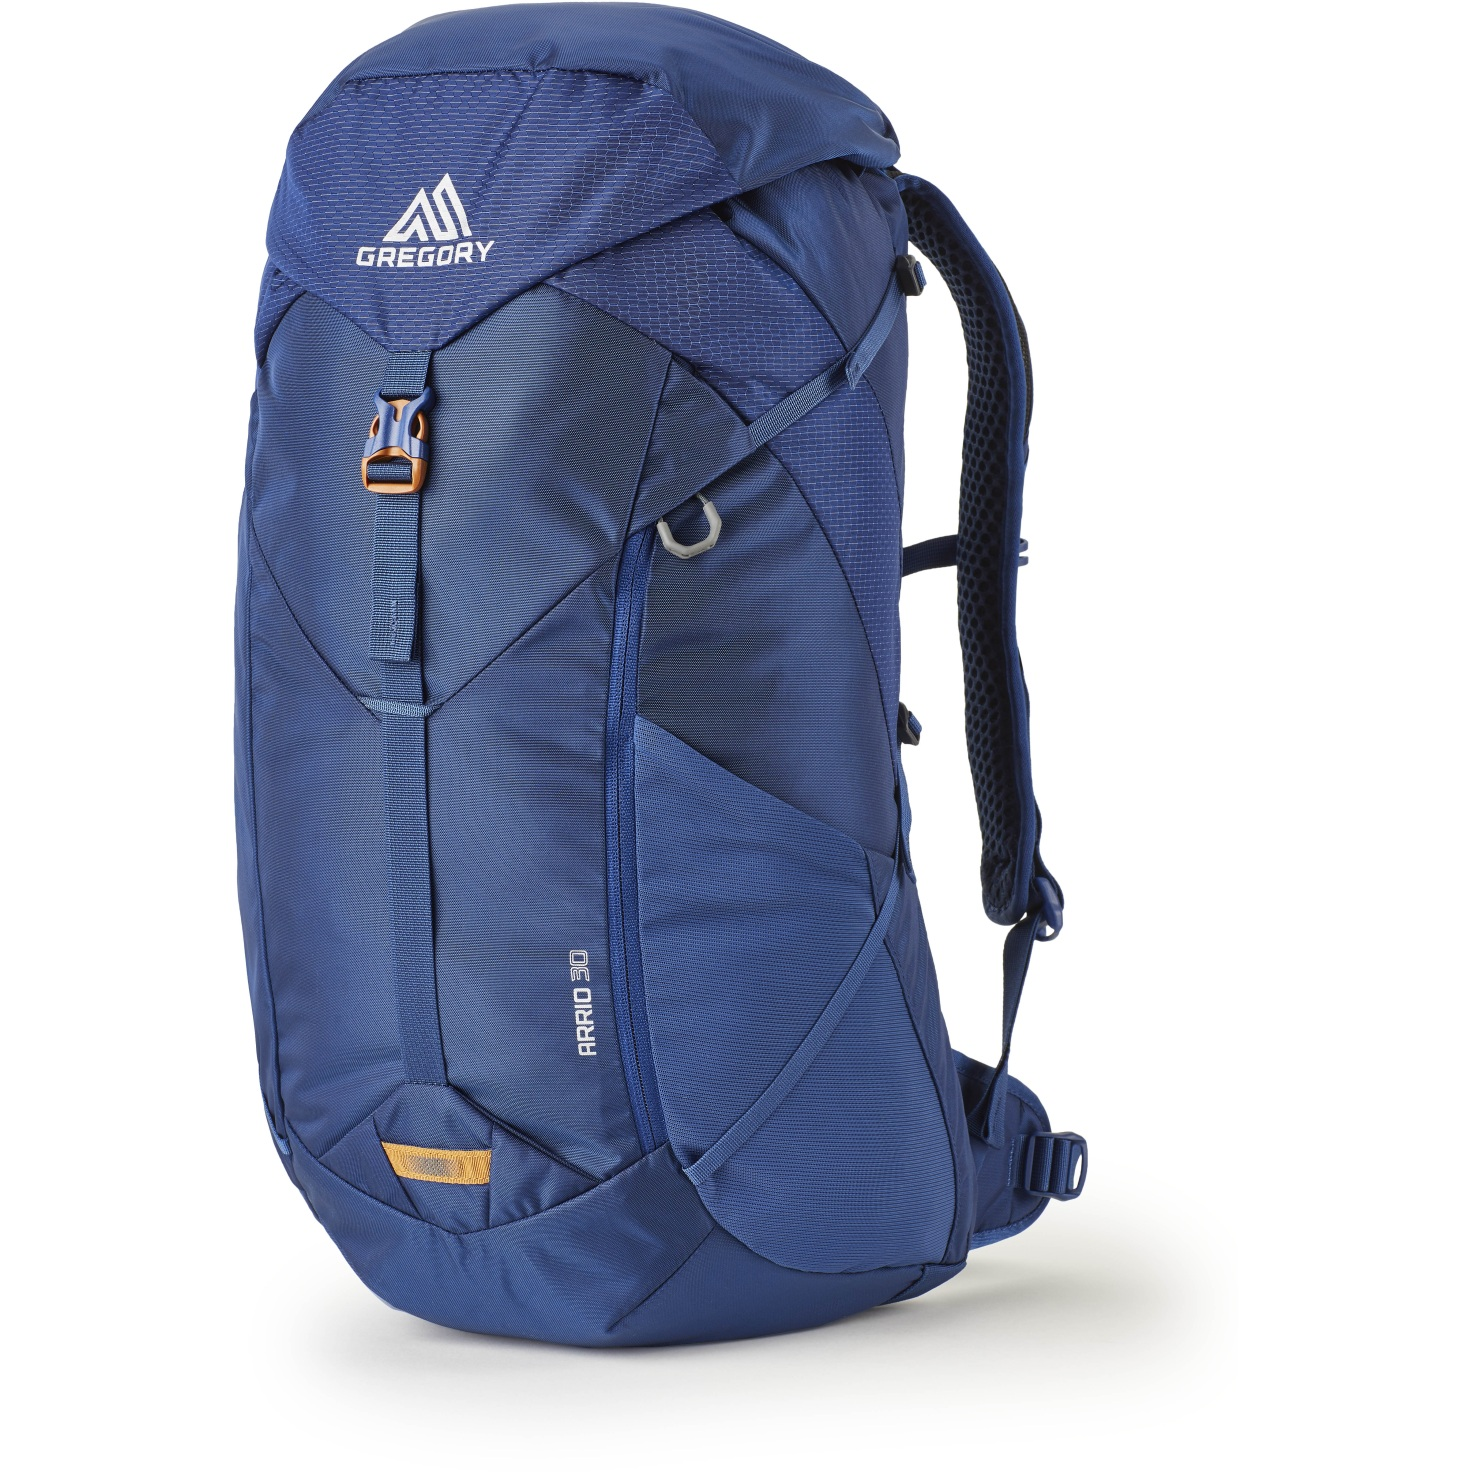 Gregory Arrio 30 Backpack - Empire Blue